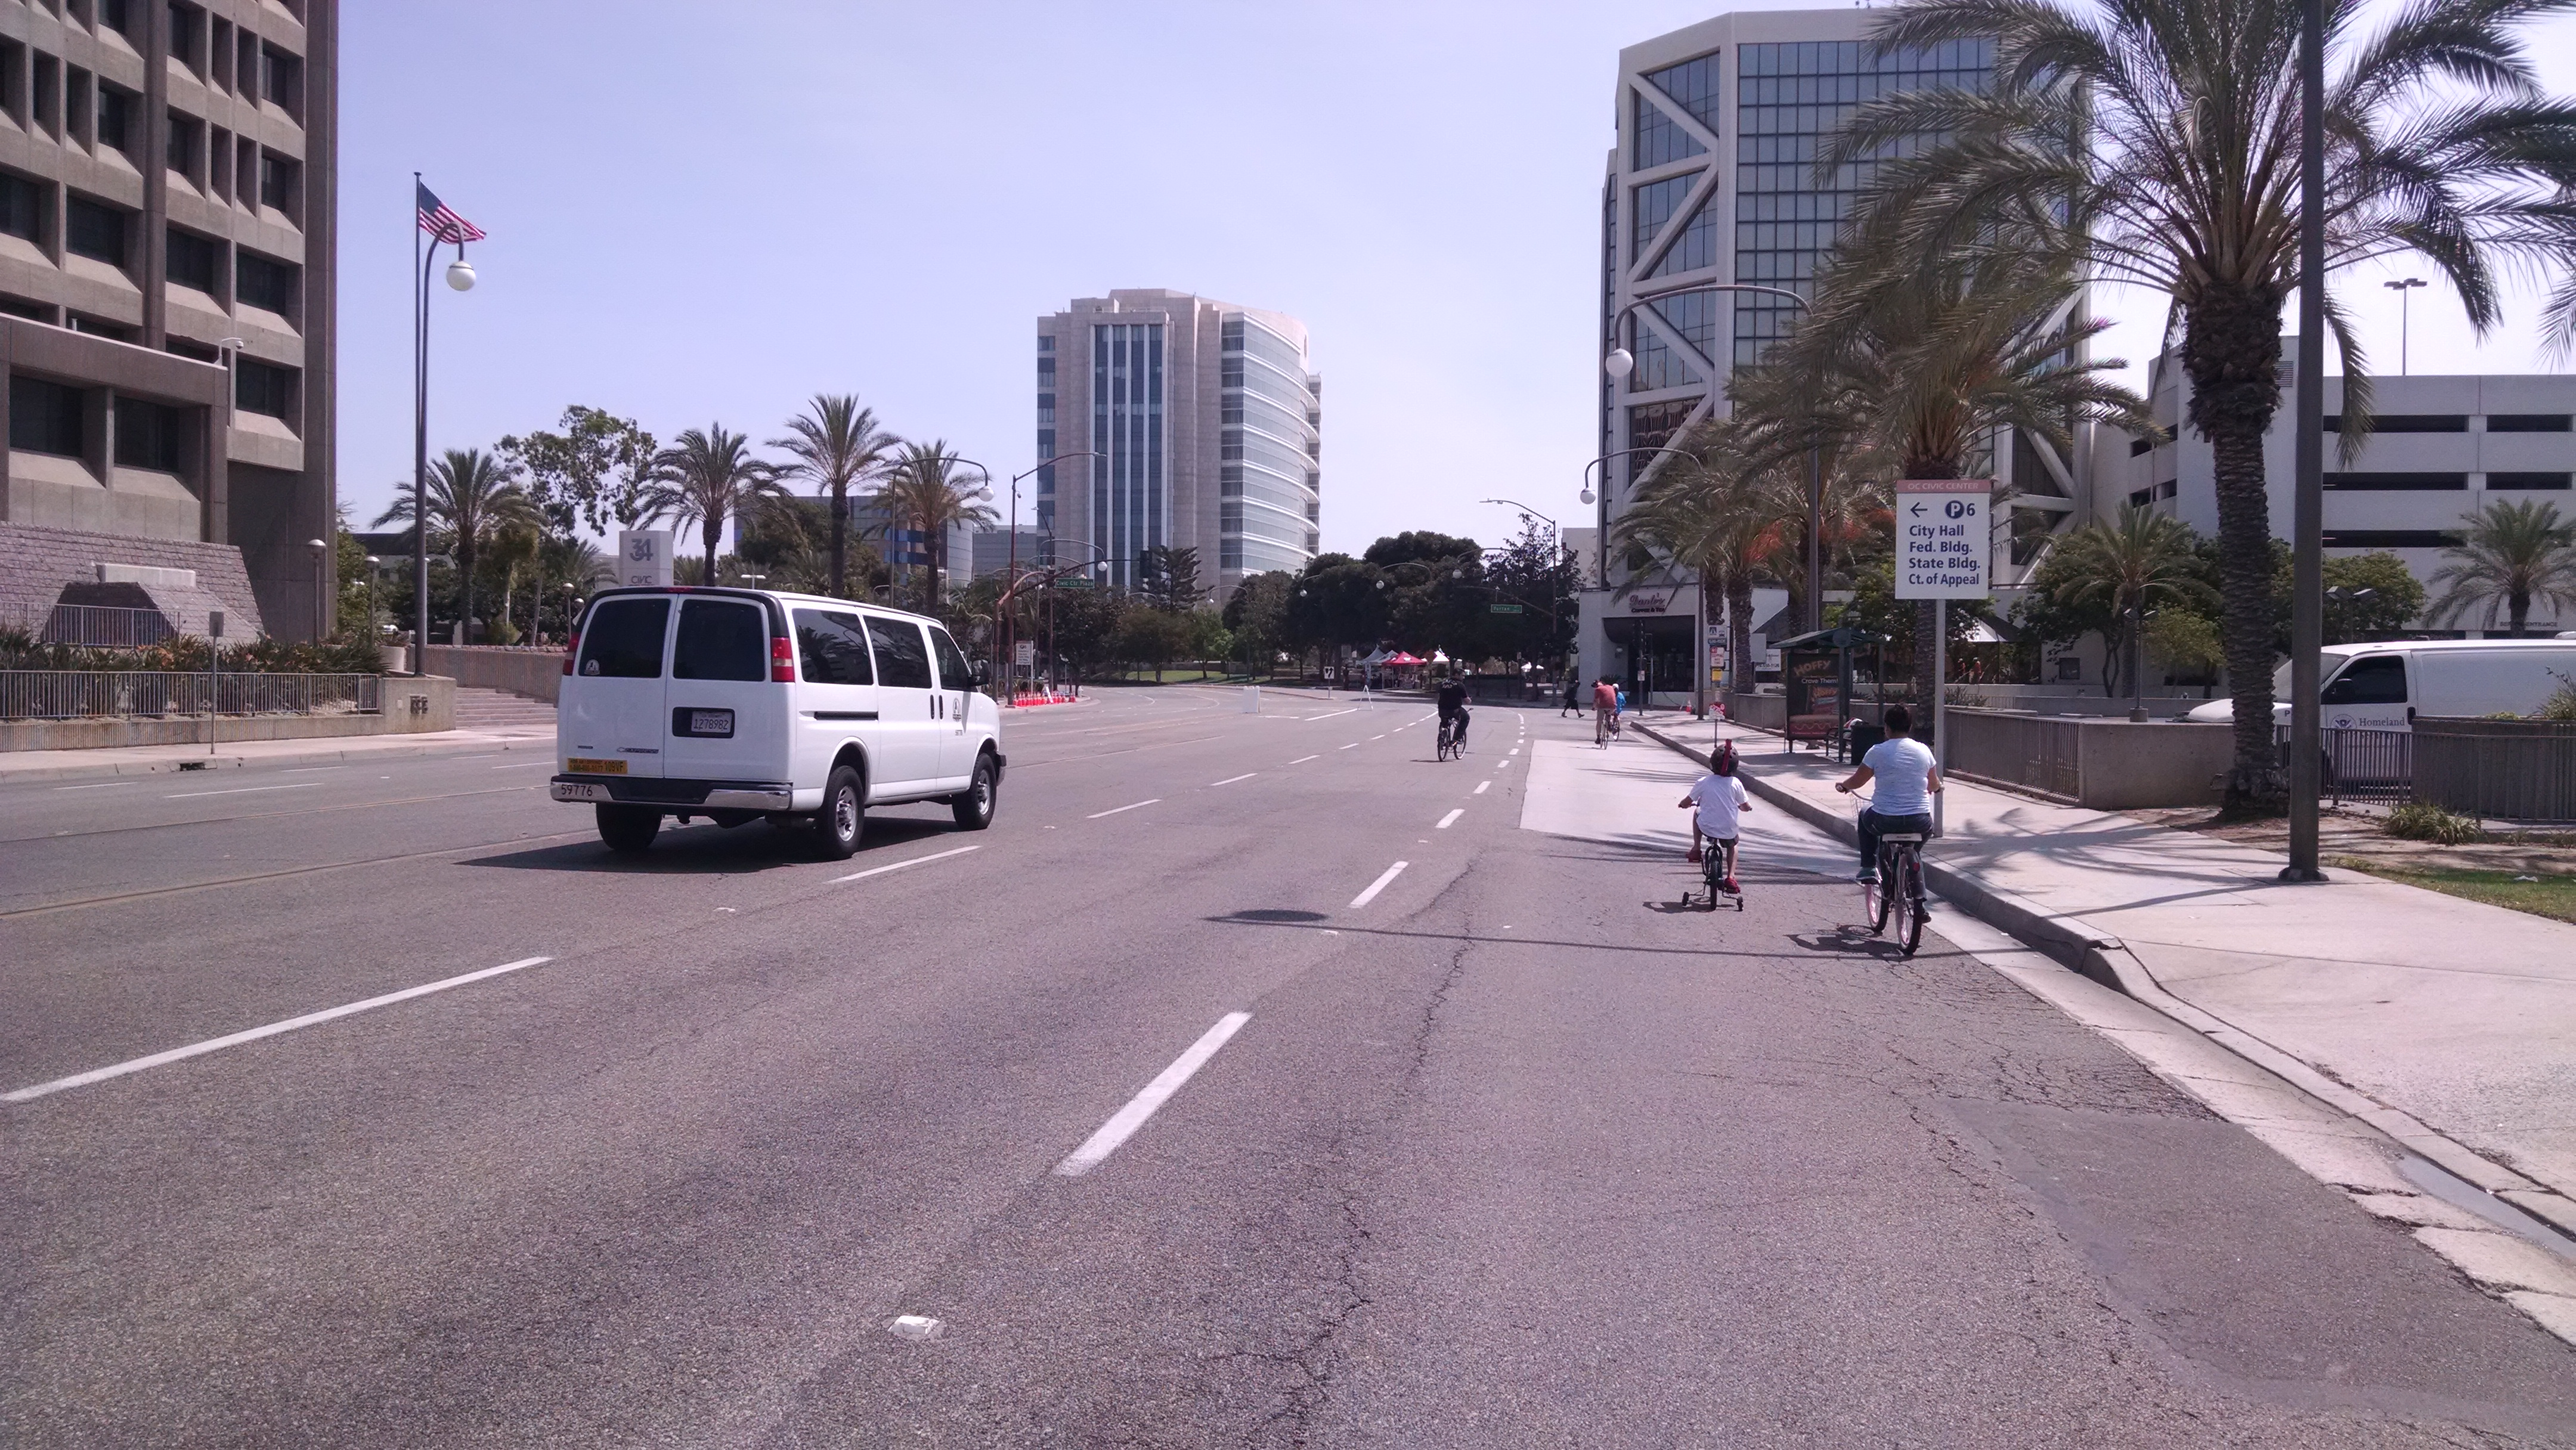 For four hours, roughly three miles were opened up for bikes and pedestrians in Santa Ana's 5k/Ciclovia event in downtown Santa Ana. Yet, there were not many people there. Photo by Kristopher Fortin